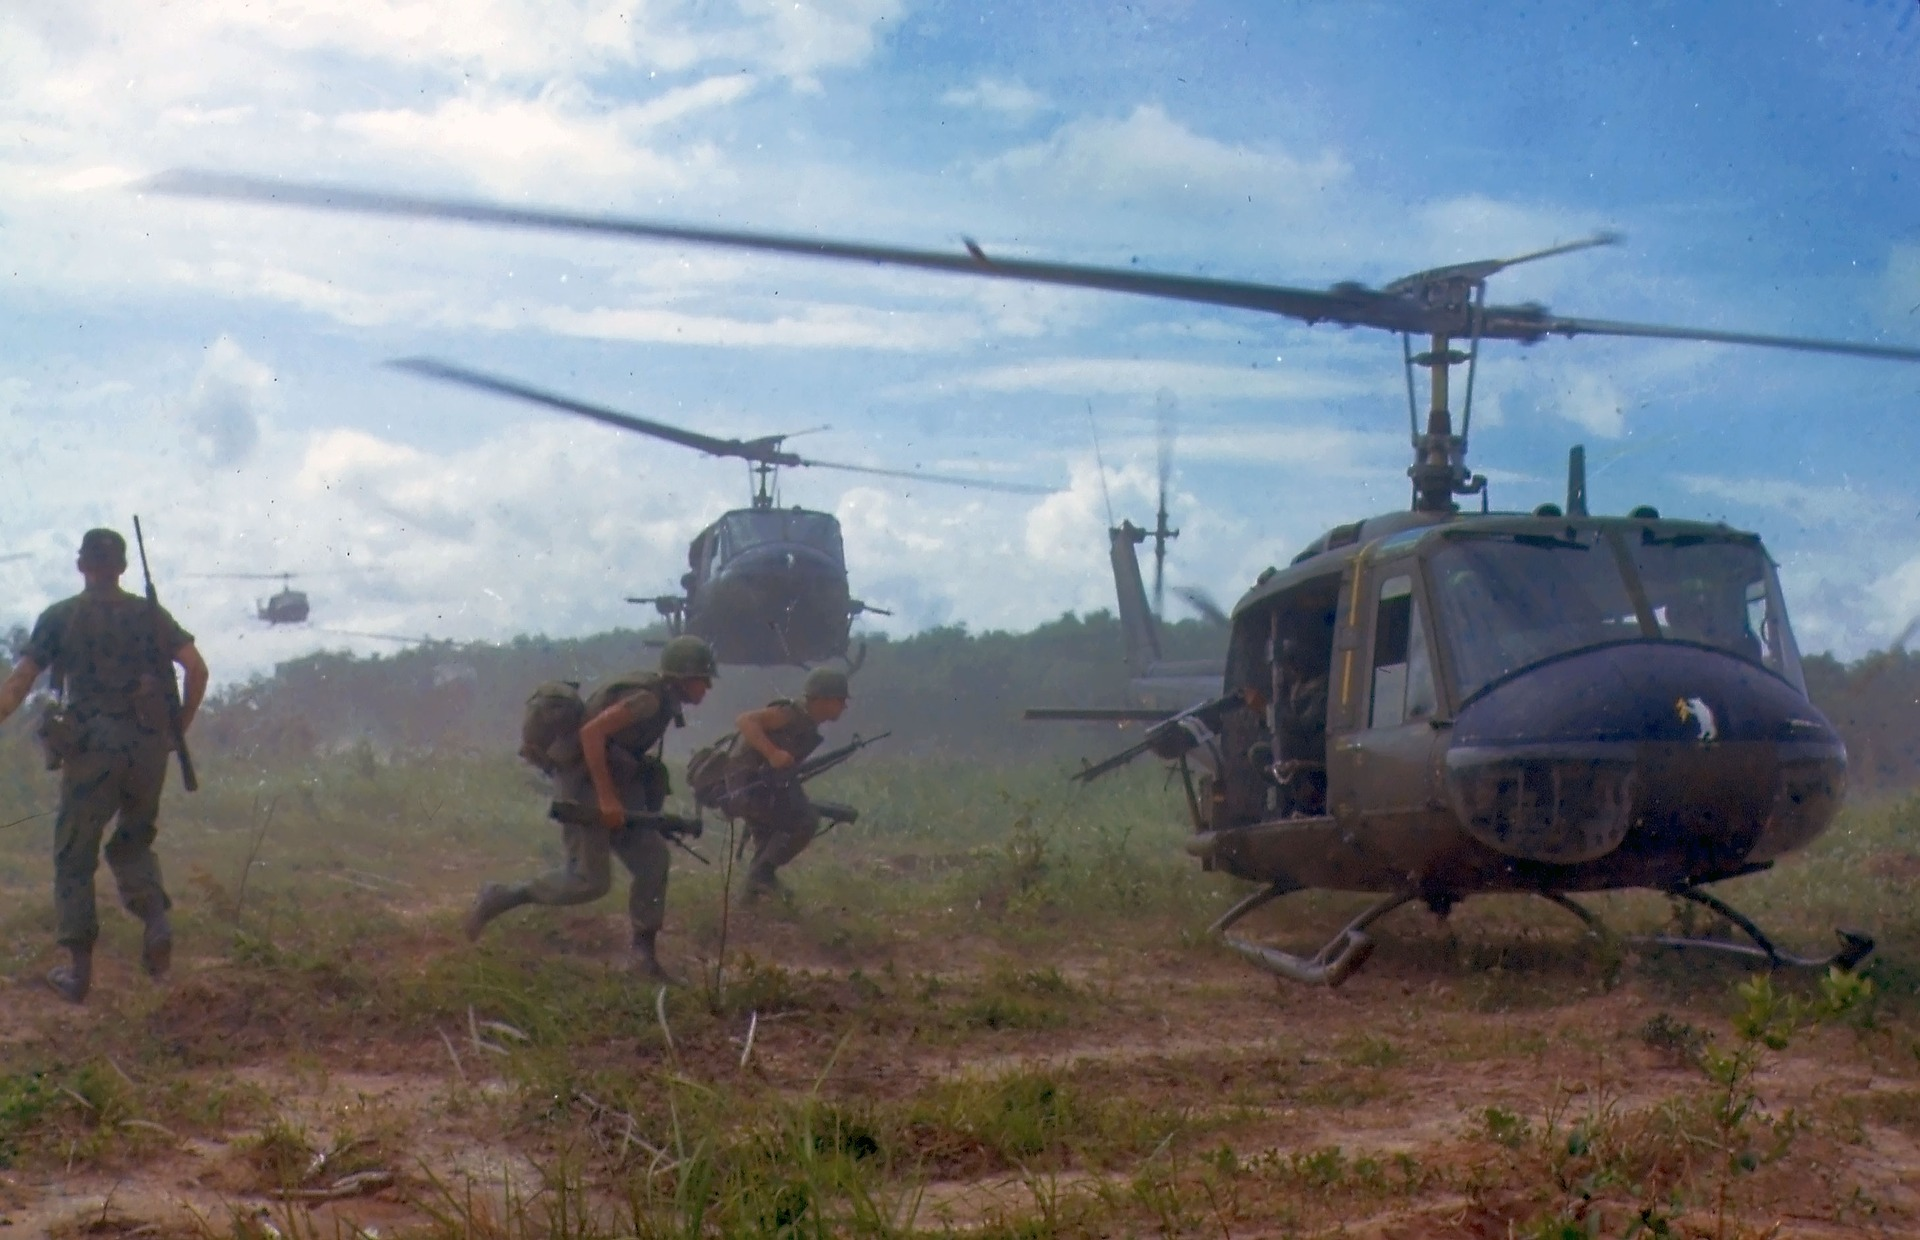 The Strength of Bamboo: Why America withdrew its combat Troops from the Vietnam War